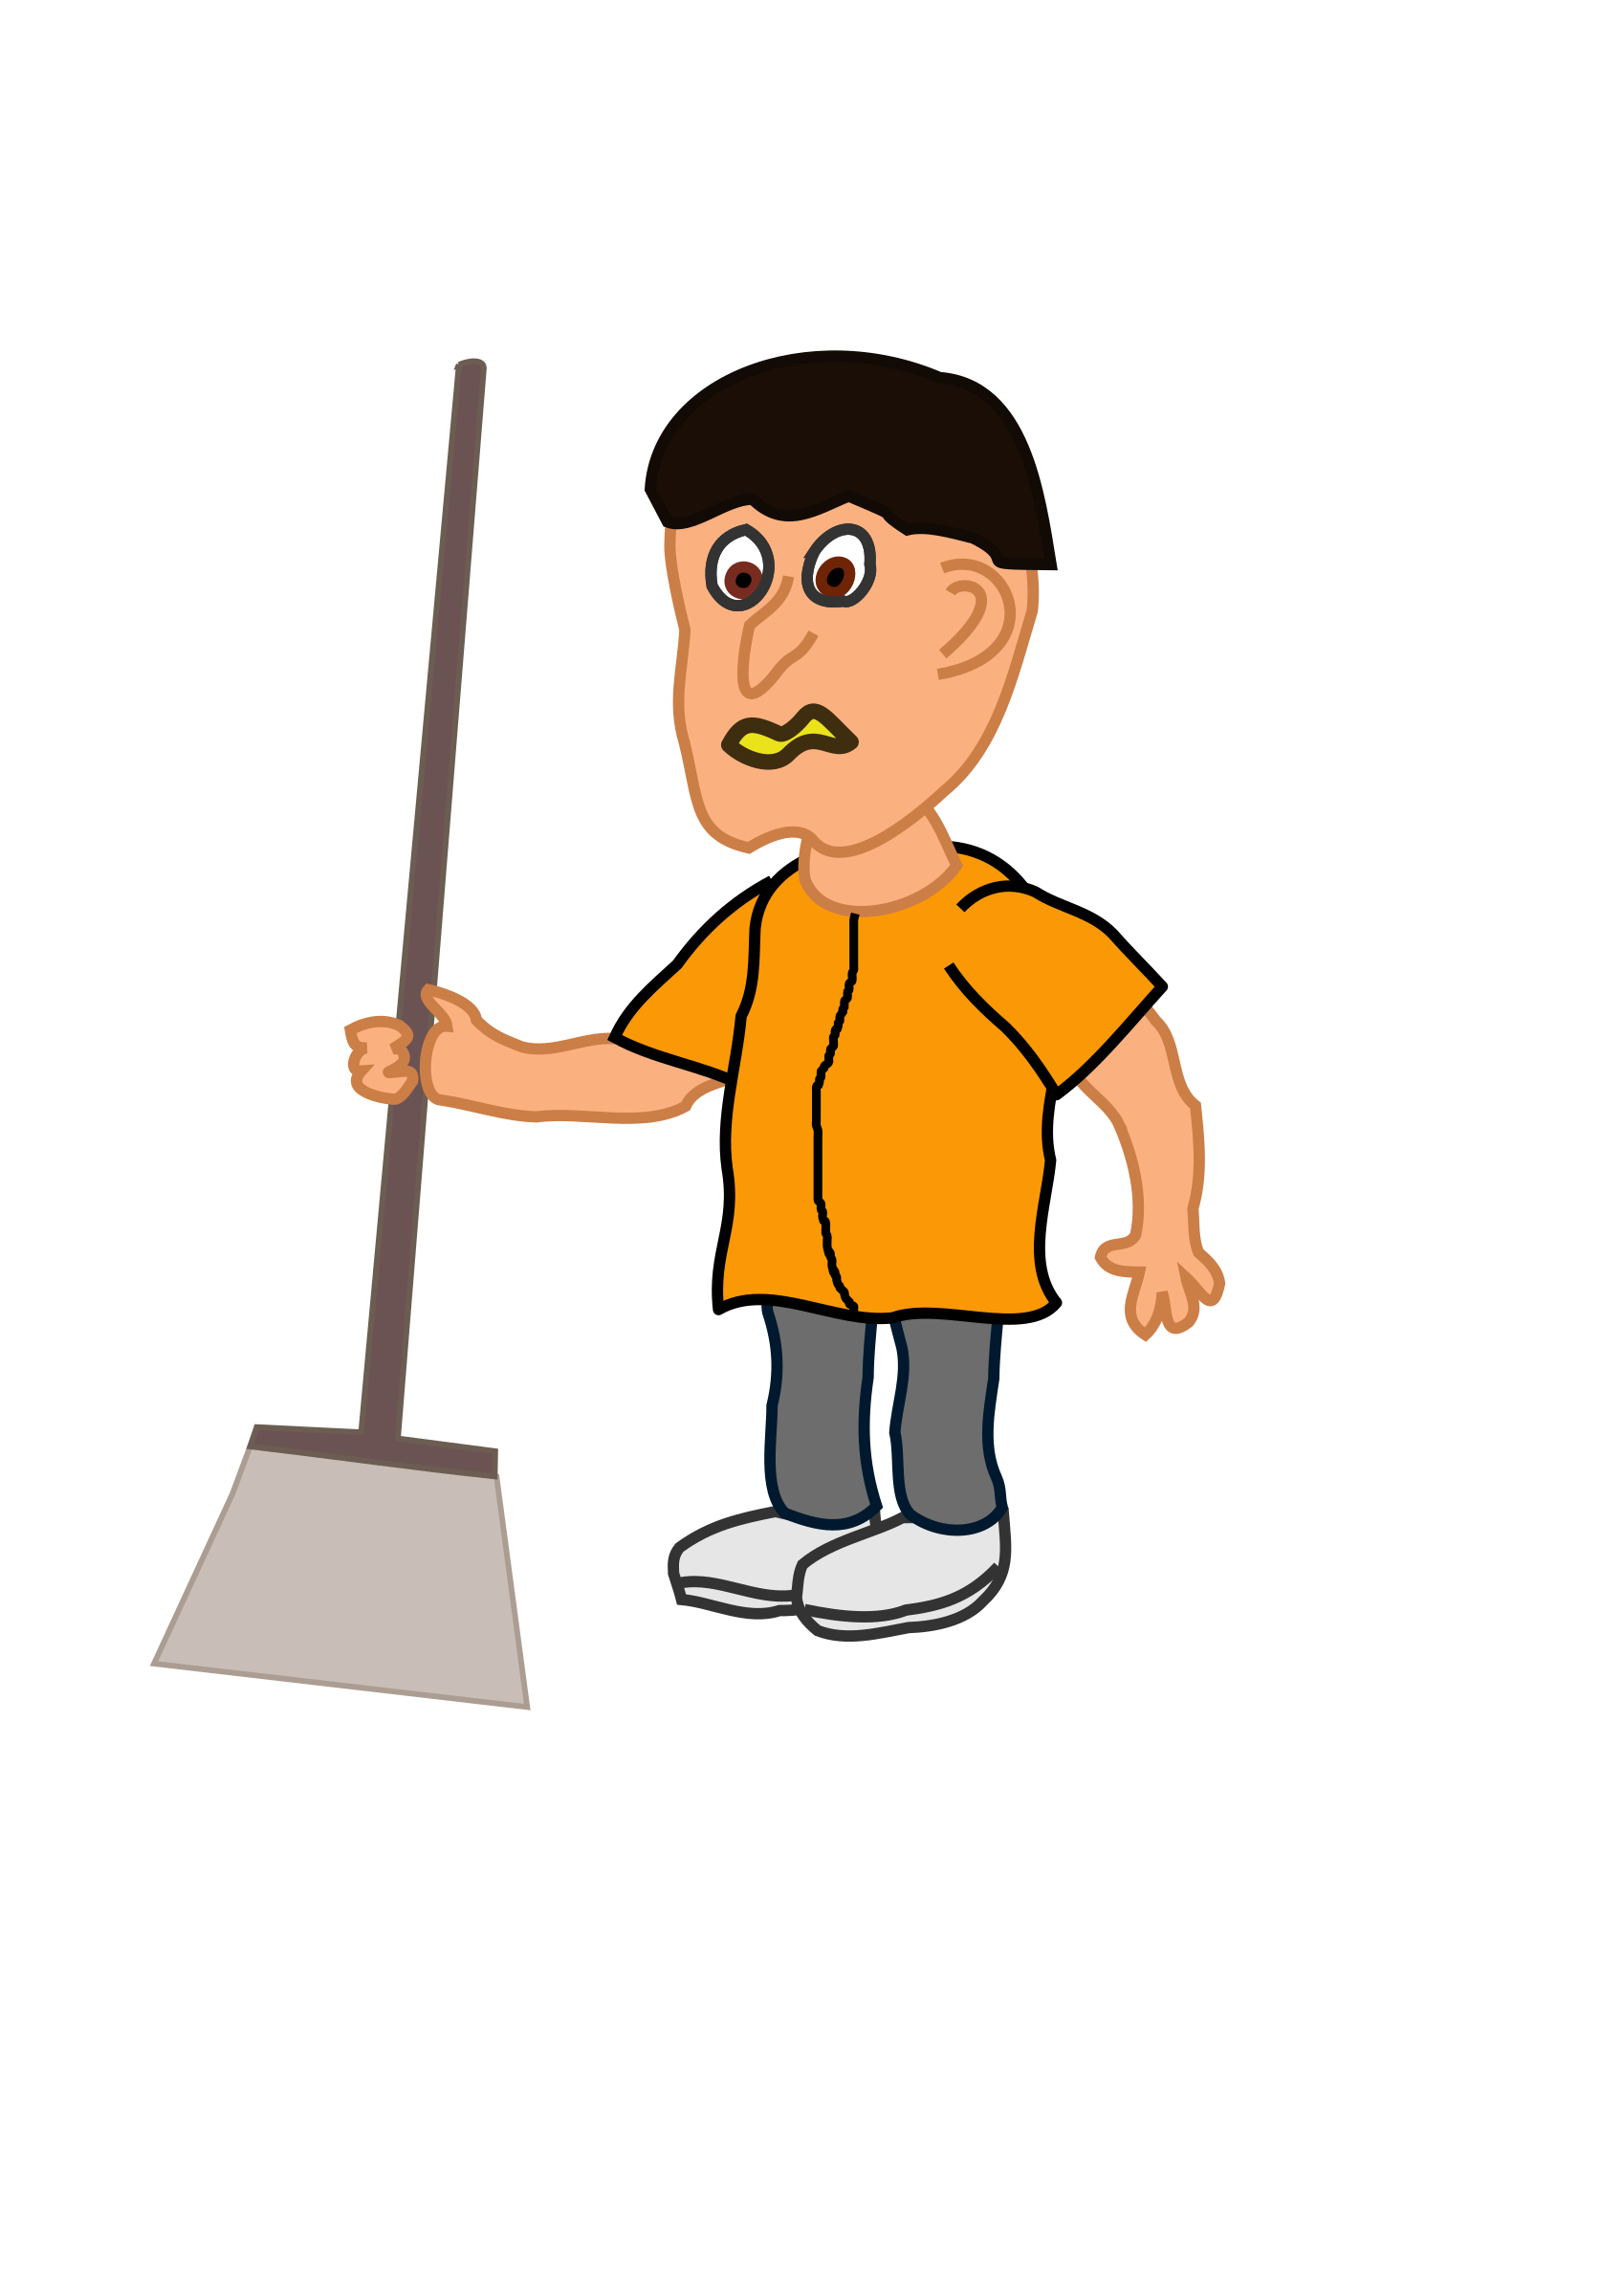 Housekeeper cleaning clip art. Housekeeping clipart clean hand